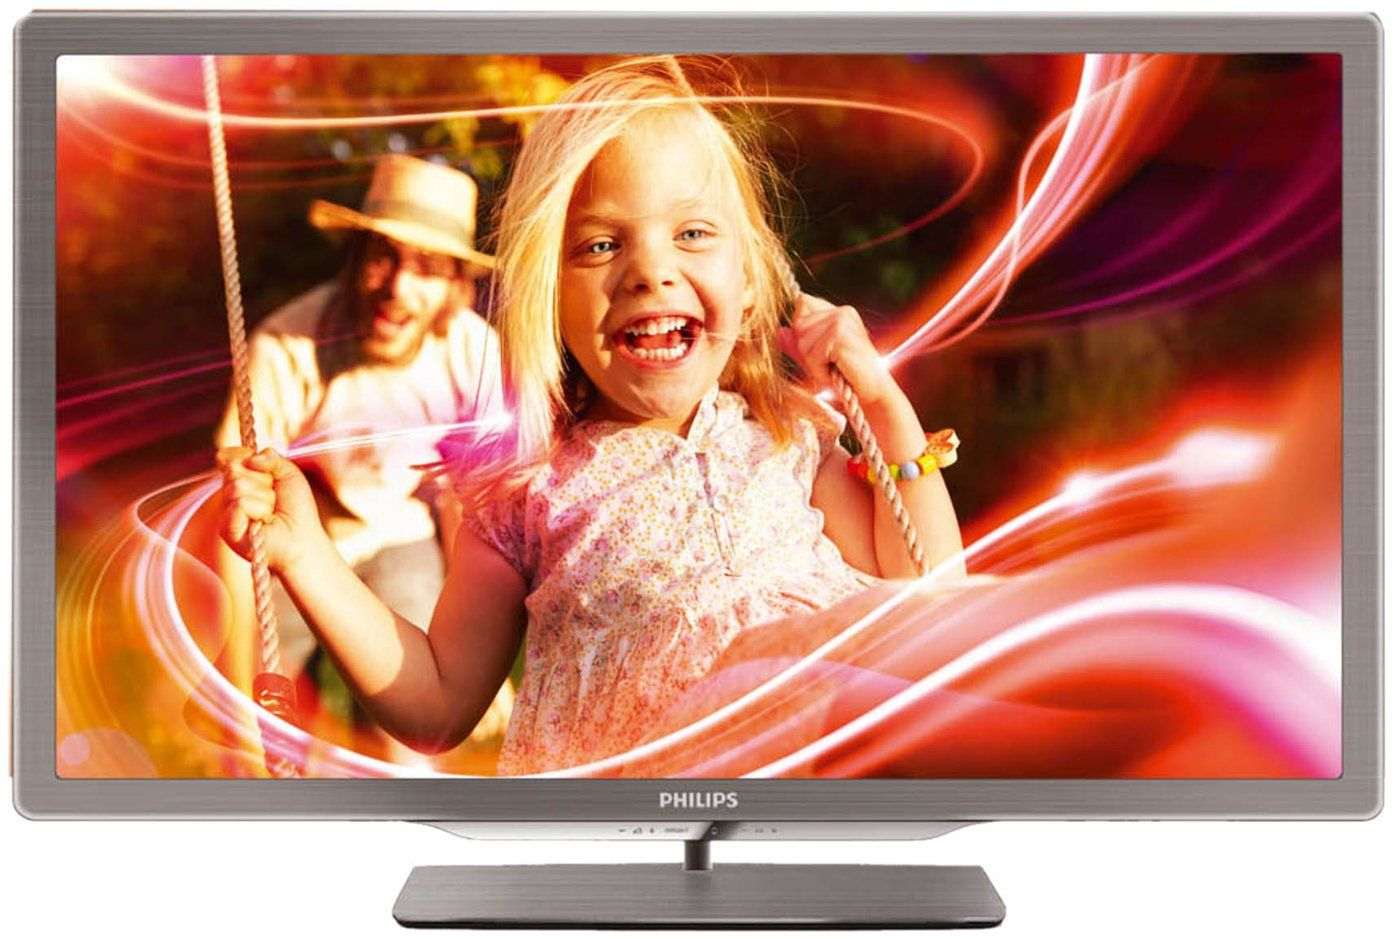 Philips 42PFL7406K/02 107 cm (42 Zoll) Ambilight LED